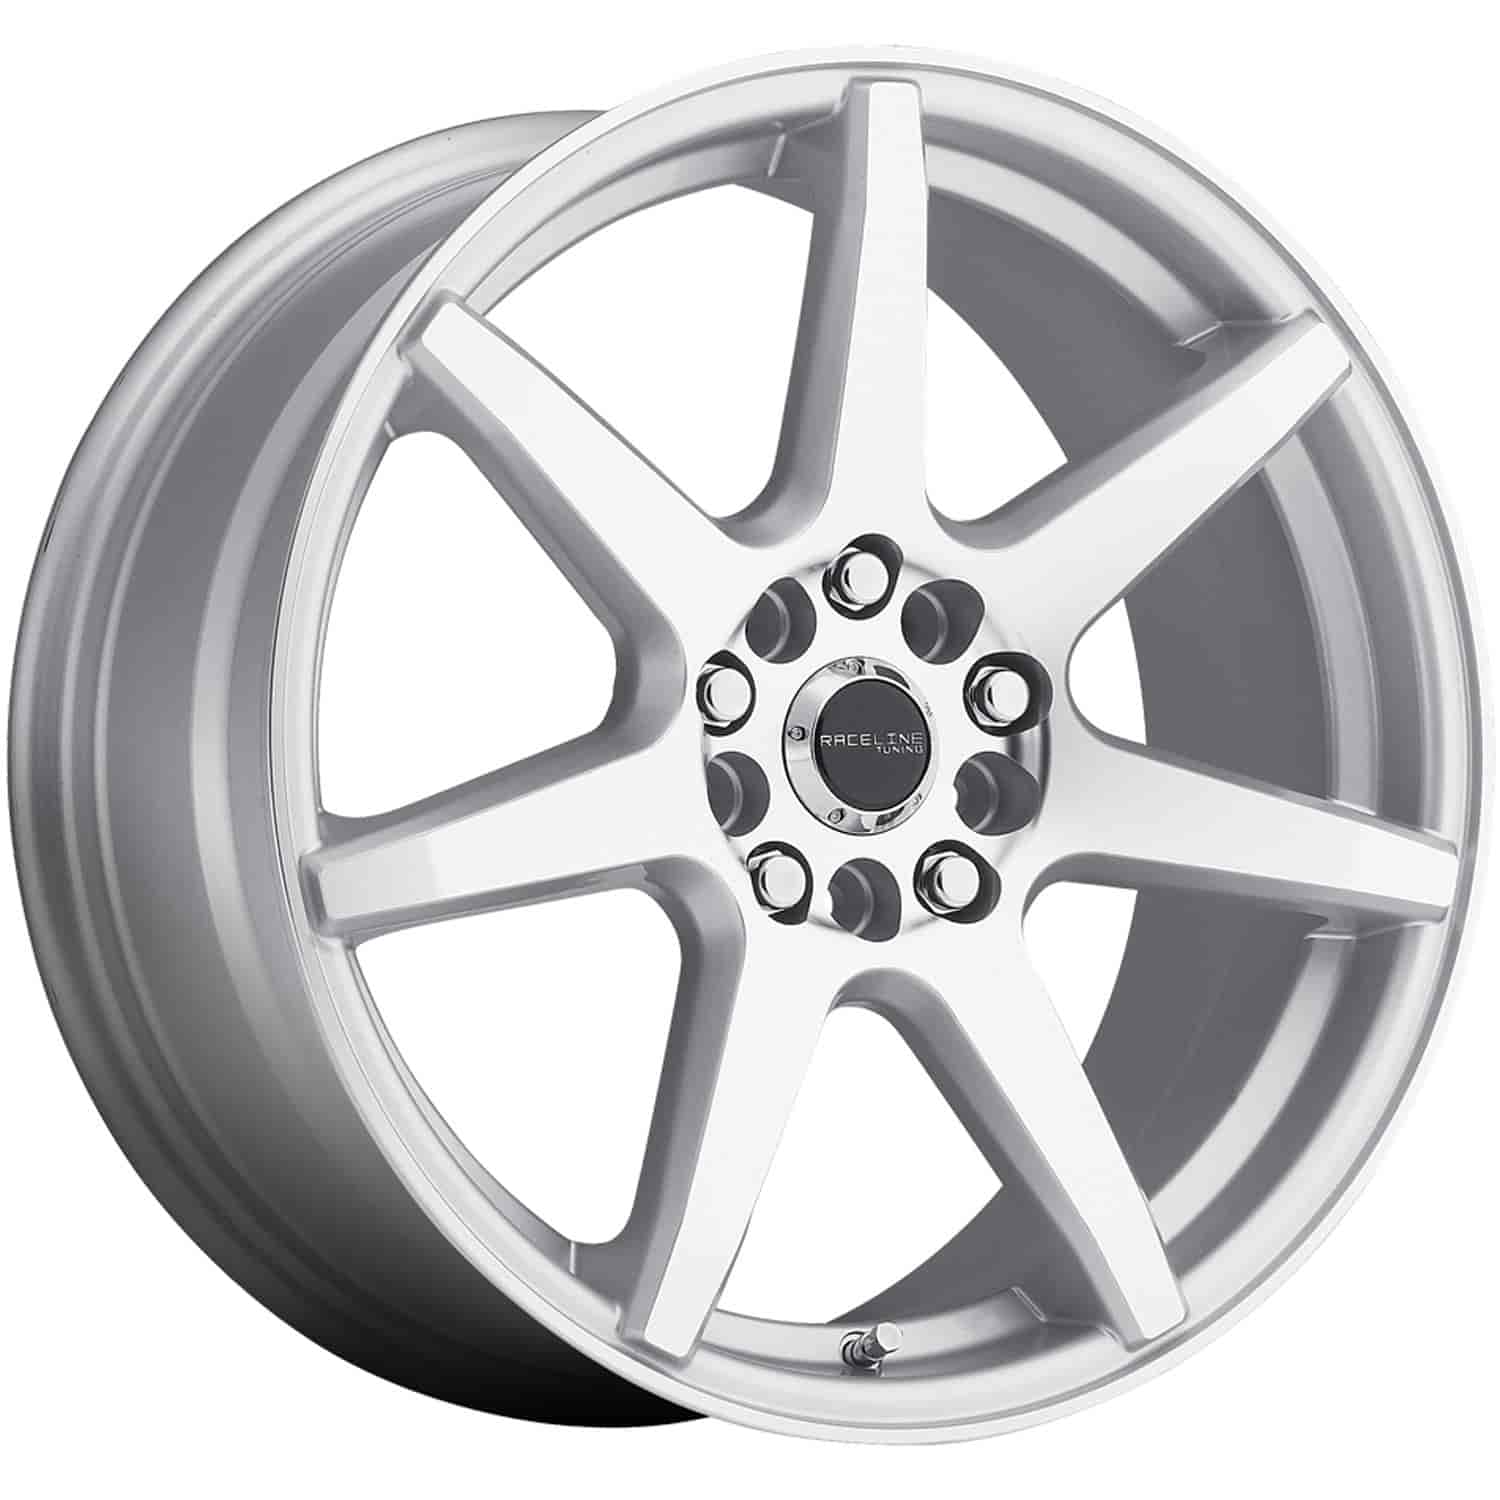 Raceline Wheels 131S7758940